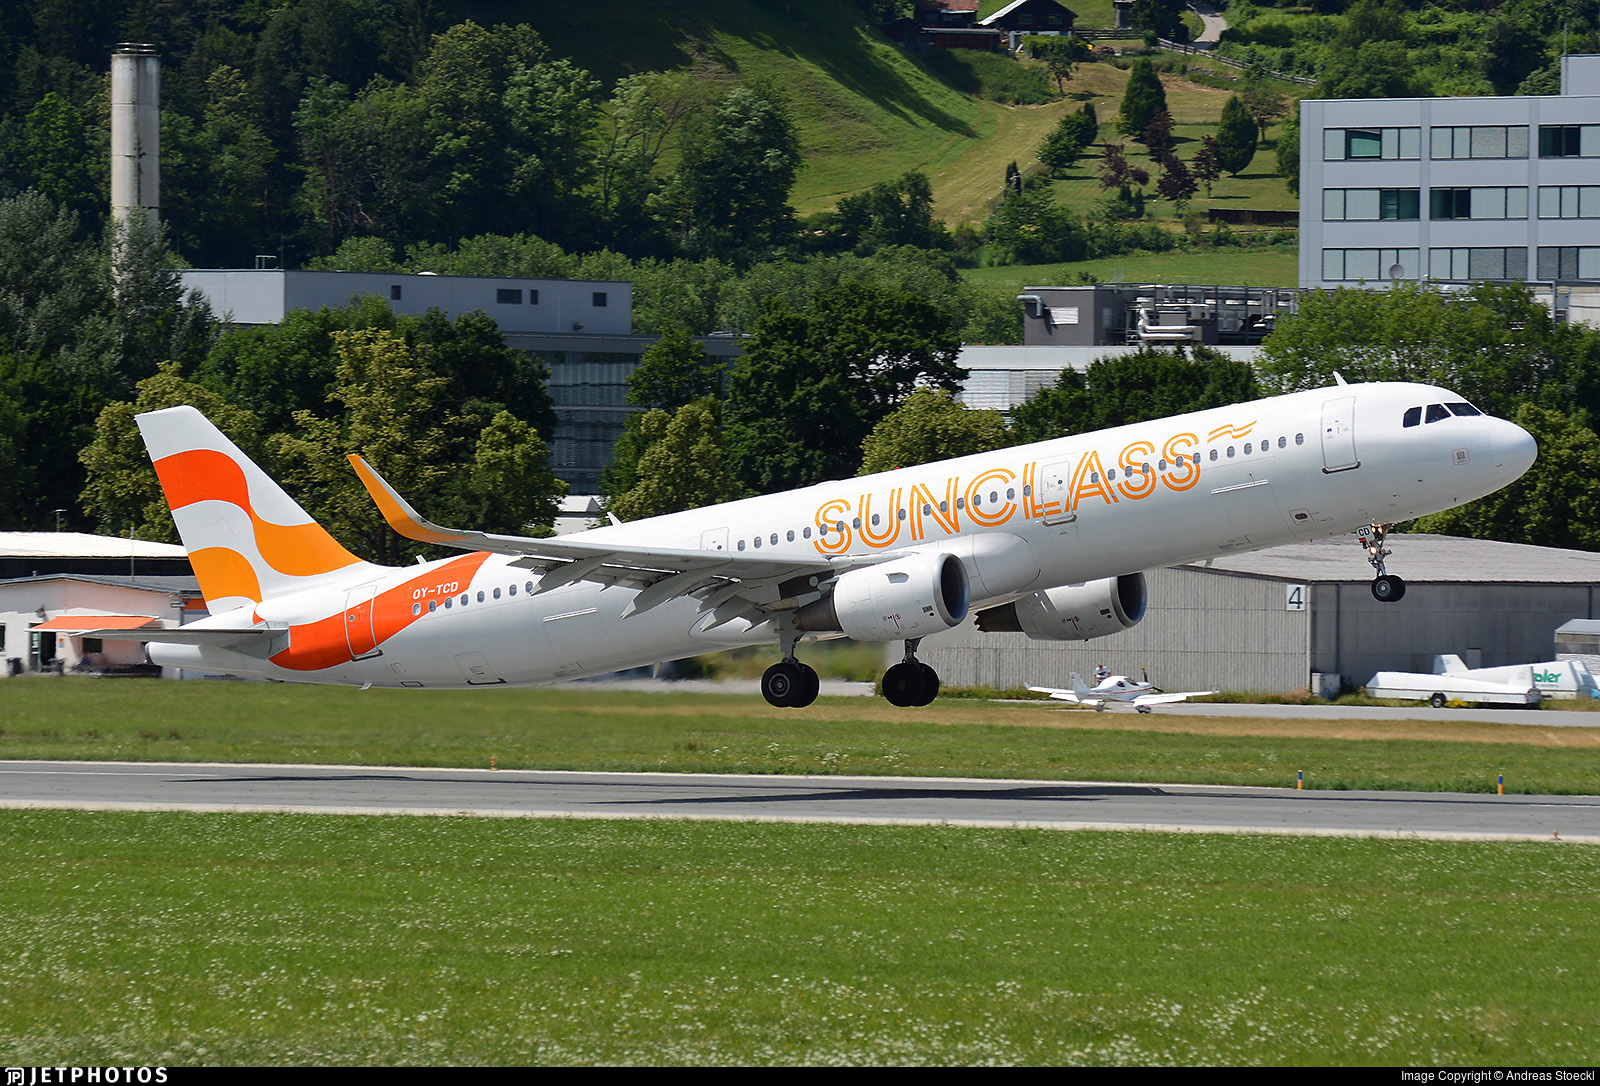 OY-TCD - Airbus A321-211 - Sunclass Airlines